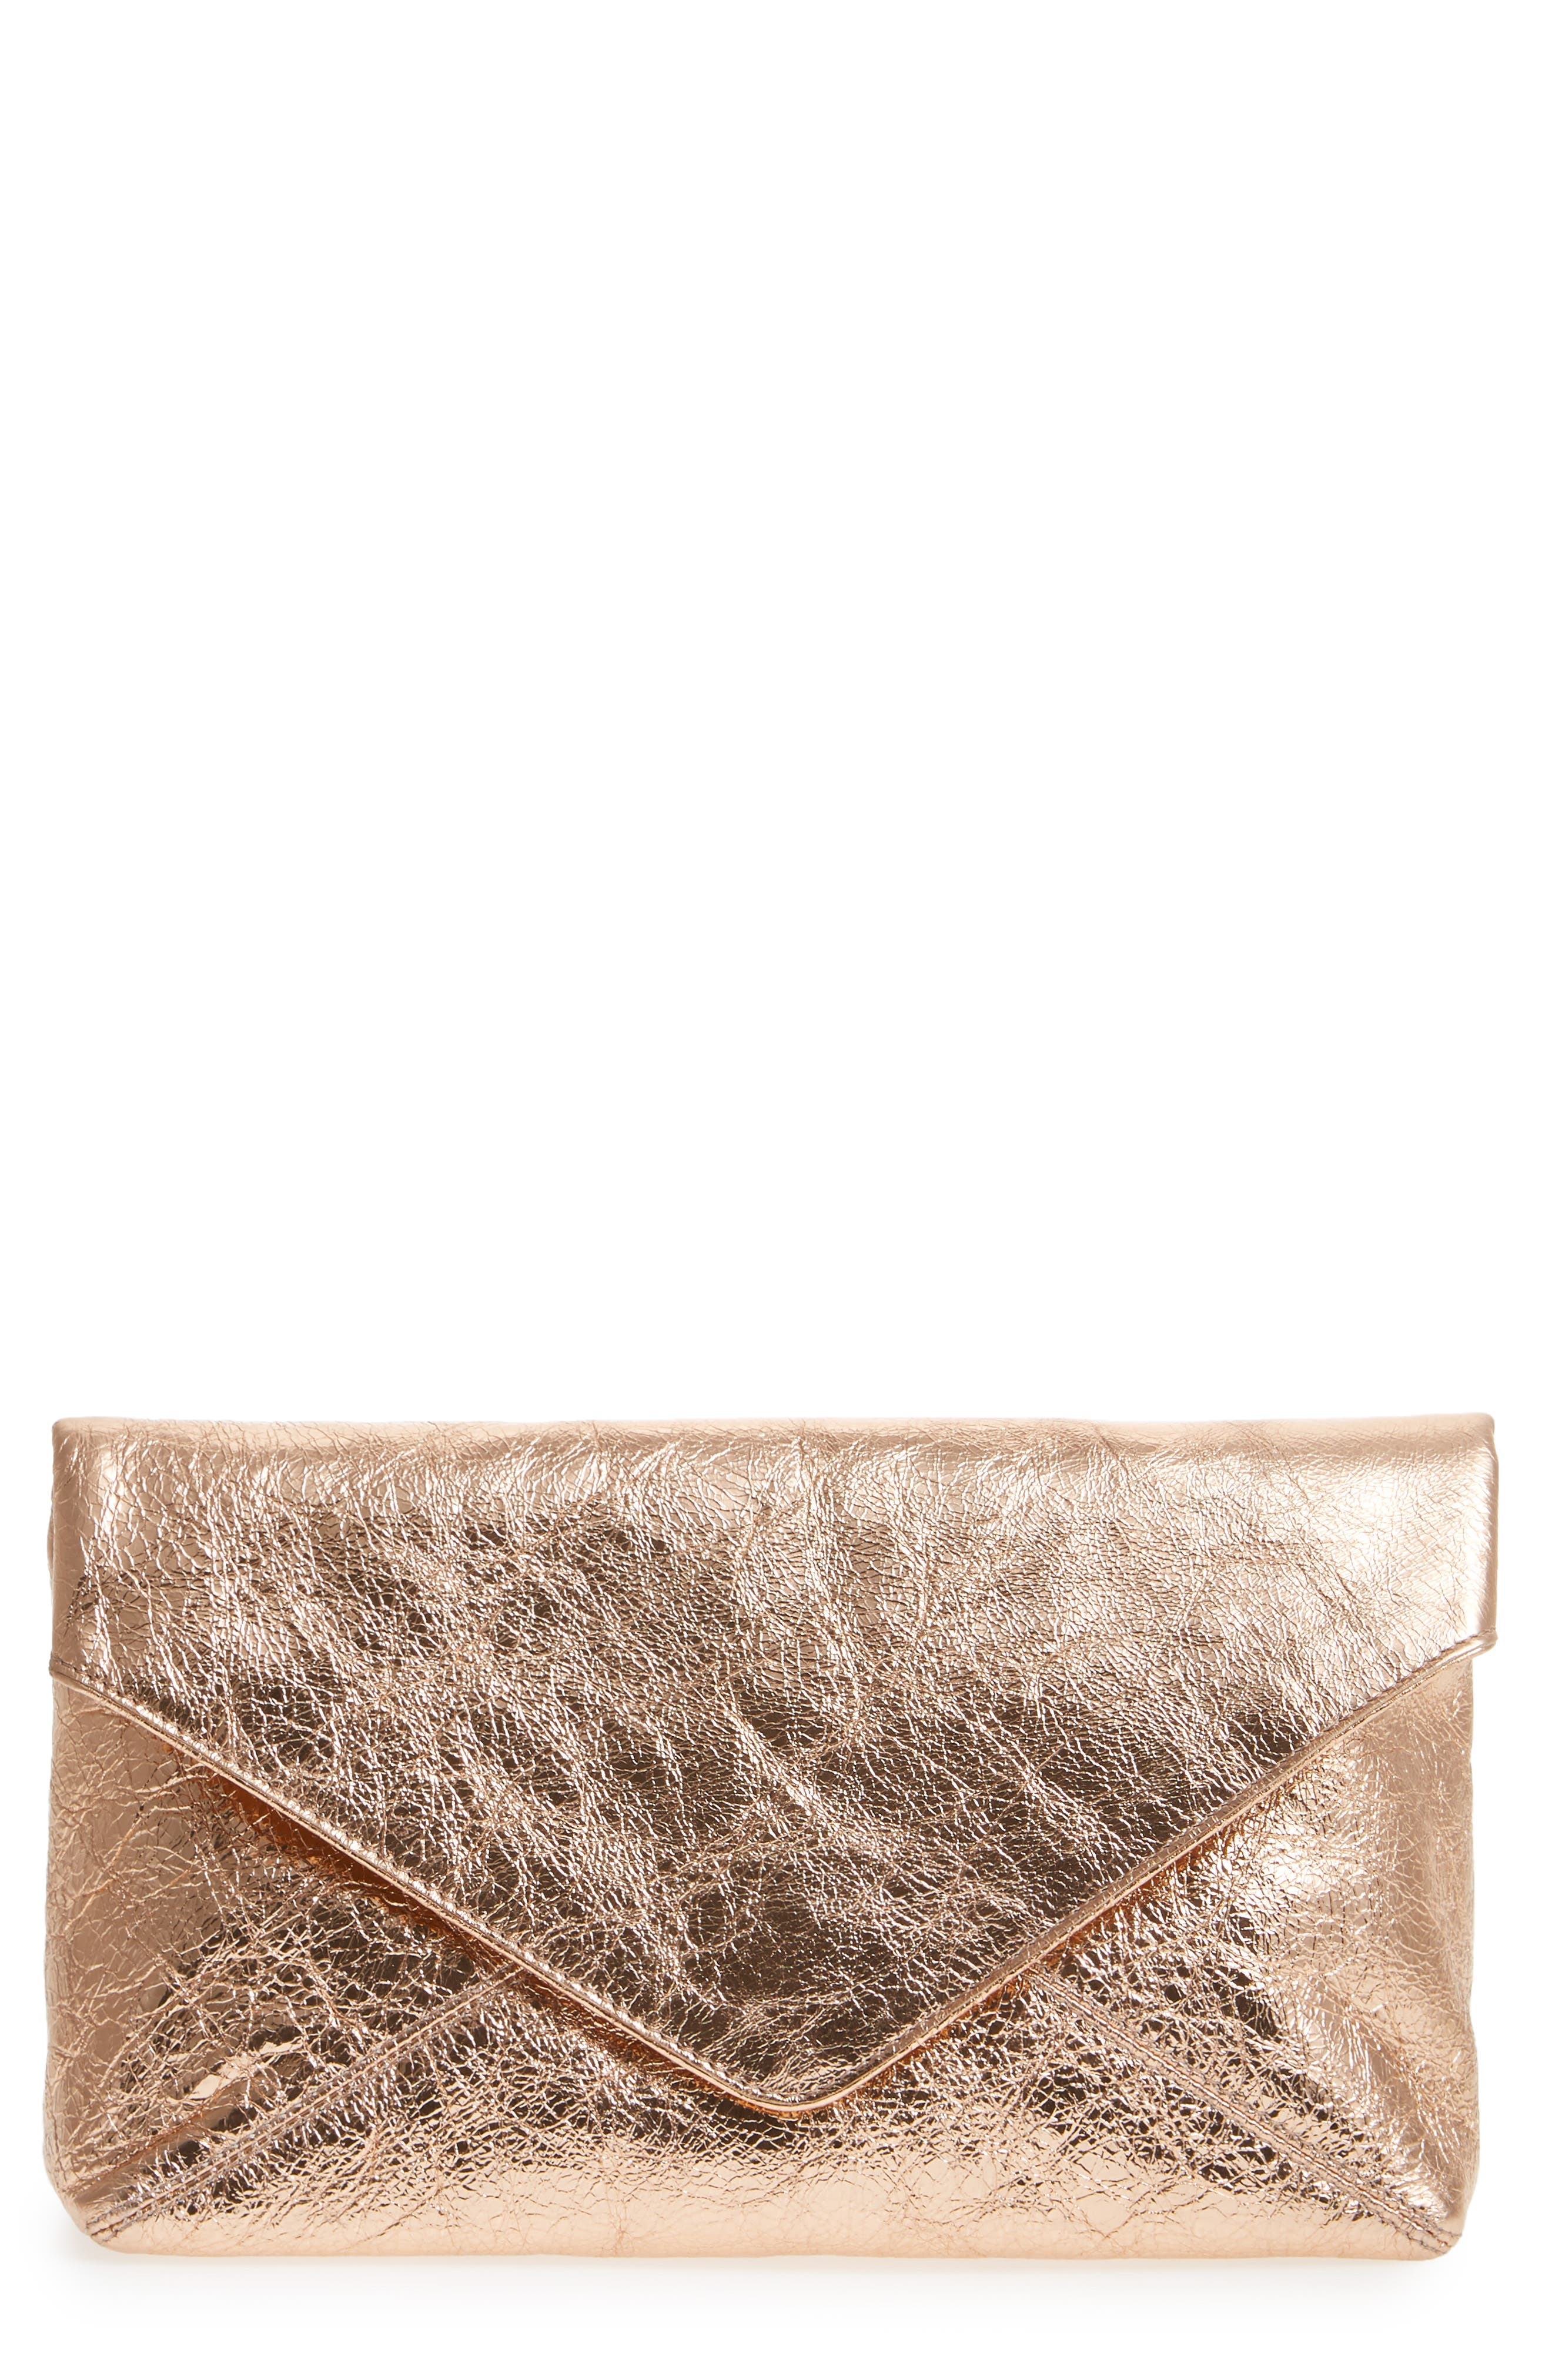 Alternate Image 1 Selected - Dries van Noten Crinkle Metallic Leather Envelope Clutch